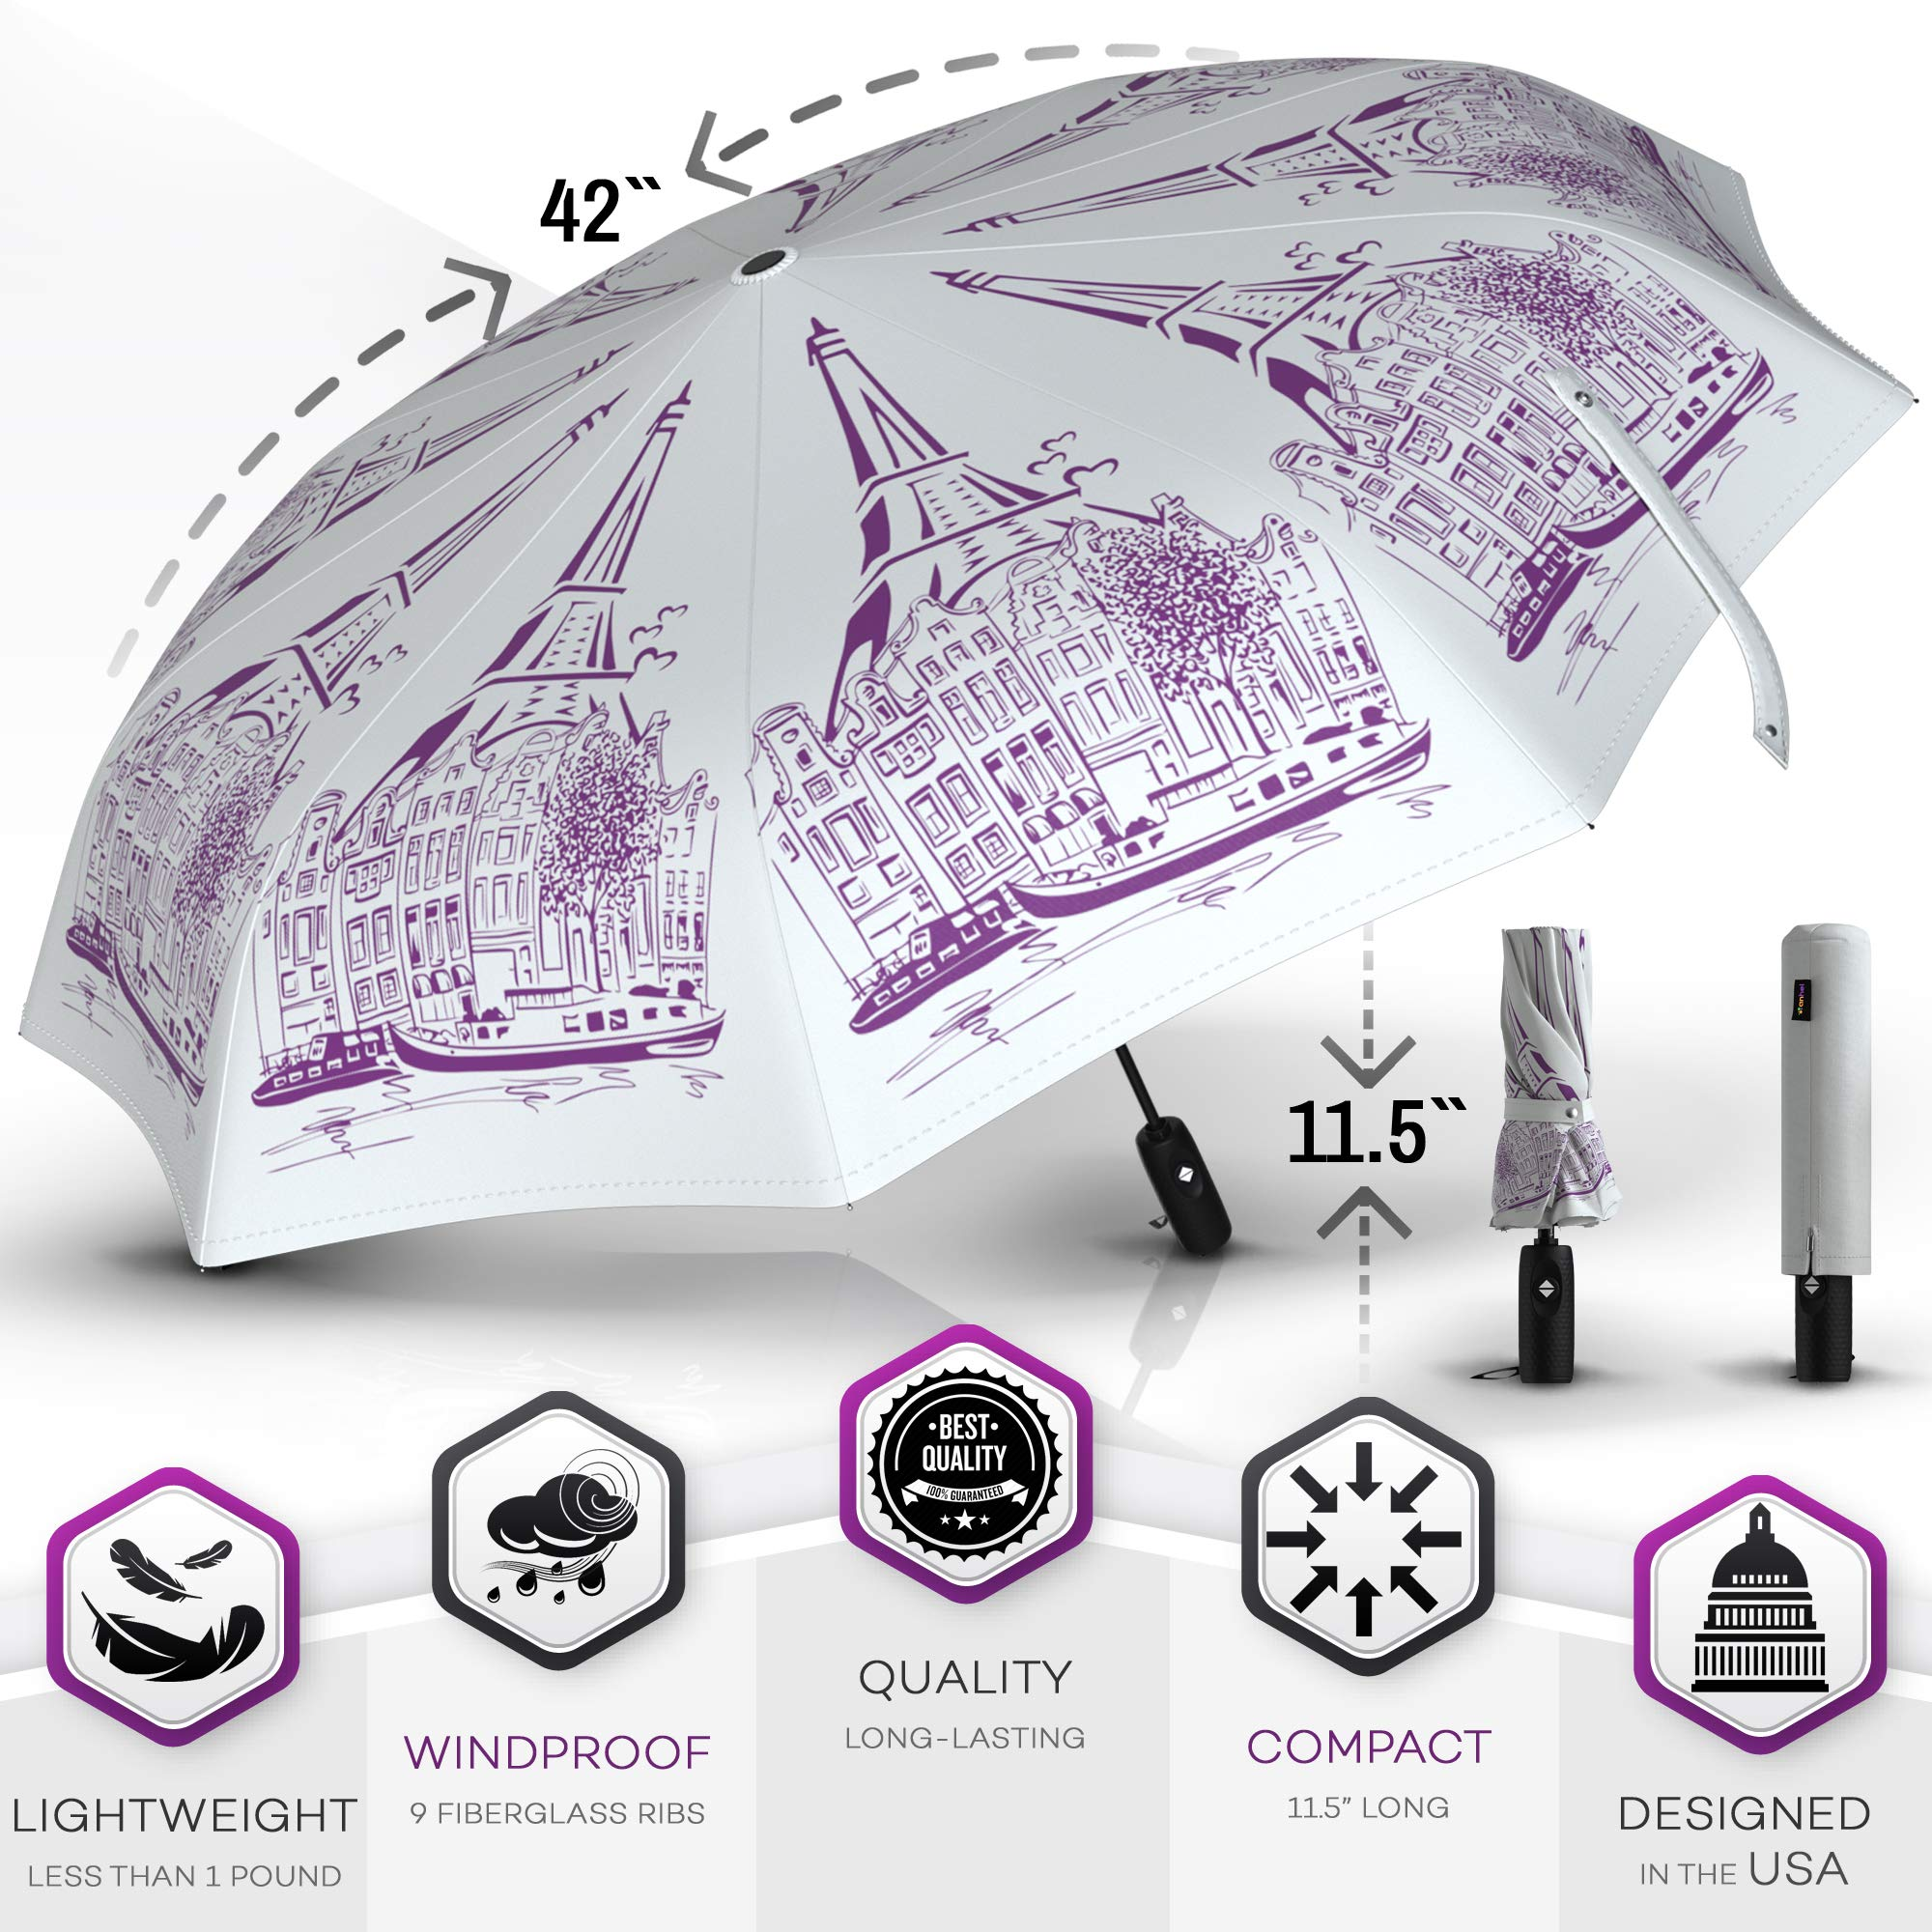 Compact Travel Umbrella - Windproof Water Repellent Teflon Coating - Auto Open Close (White Elegance)